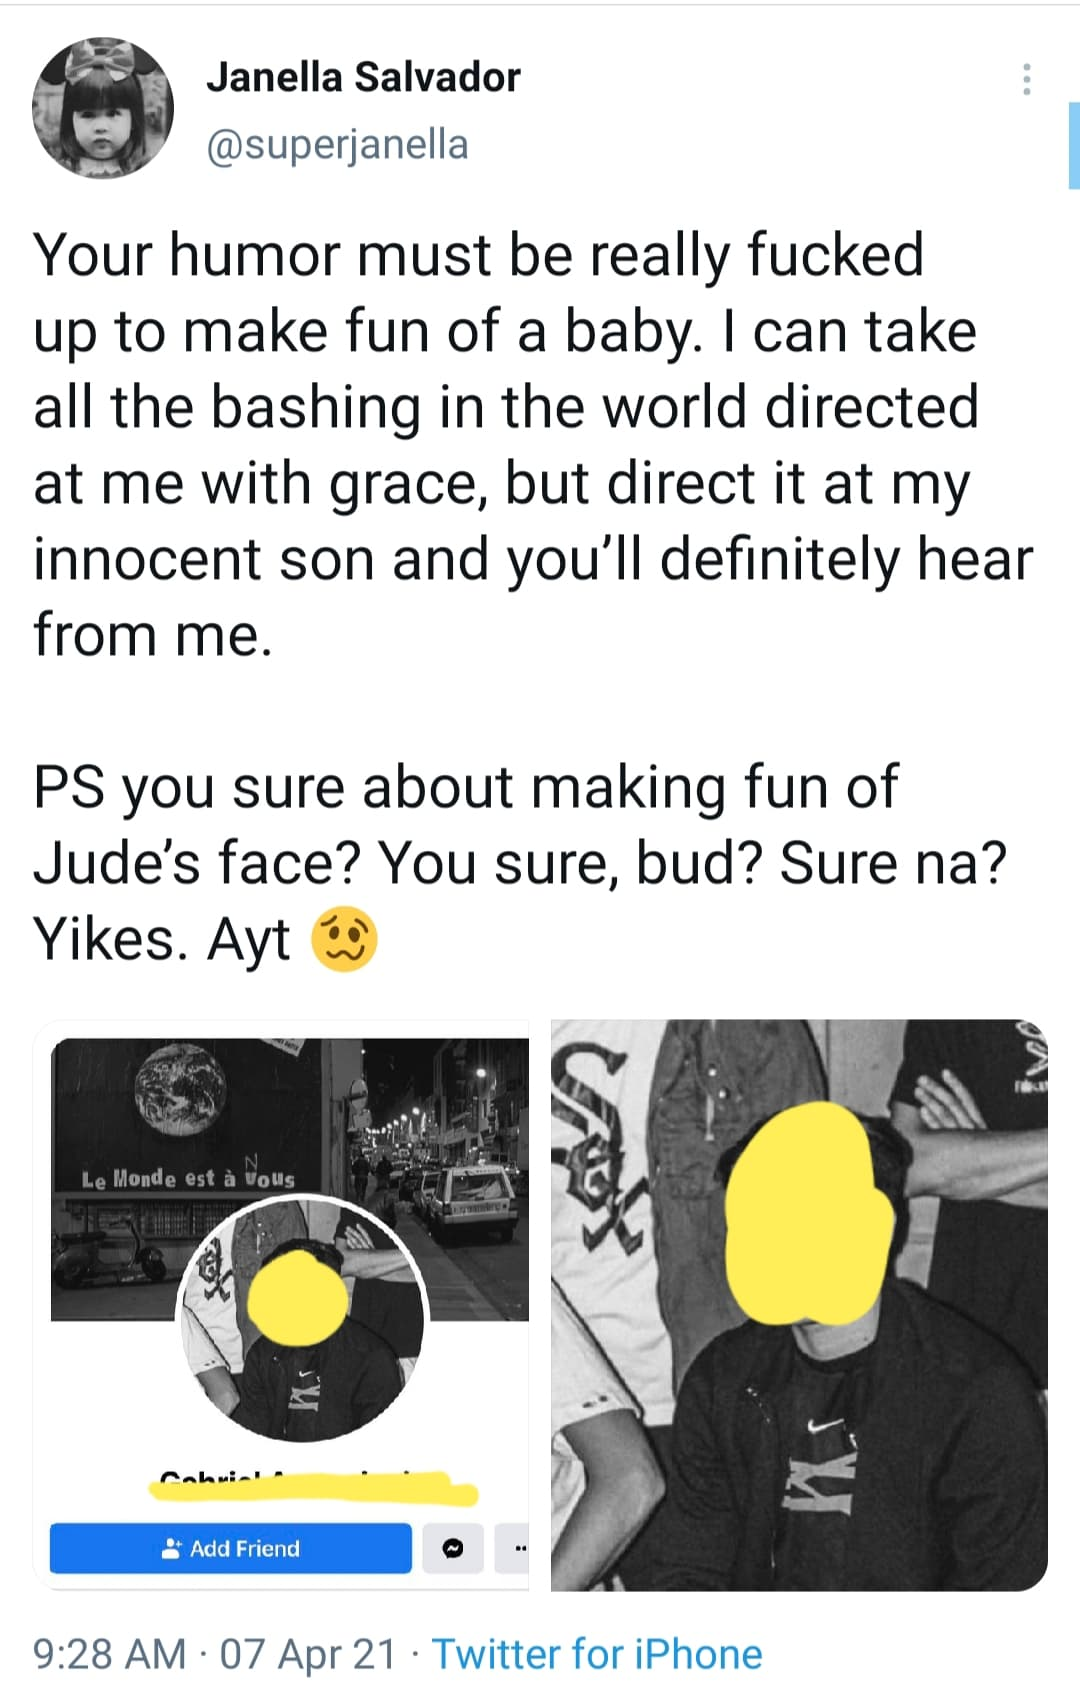 Twitter: Janella Salvador calls out and posts photo of baby jude basher